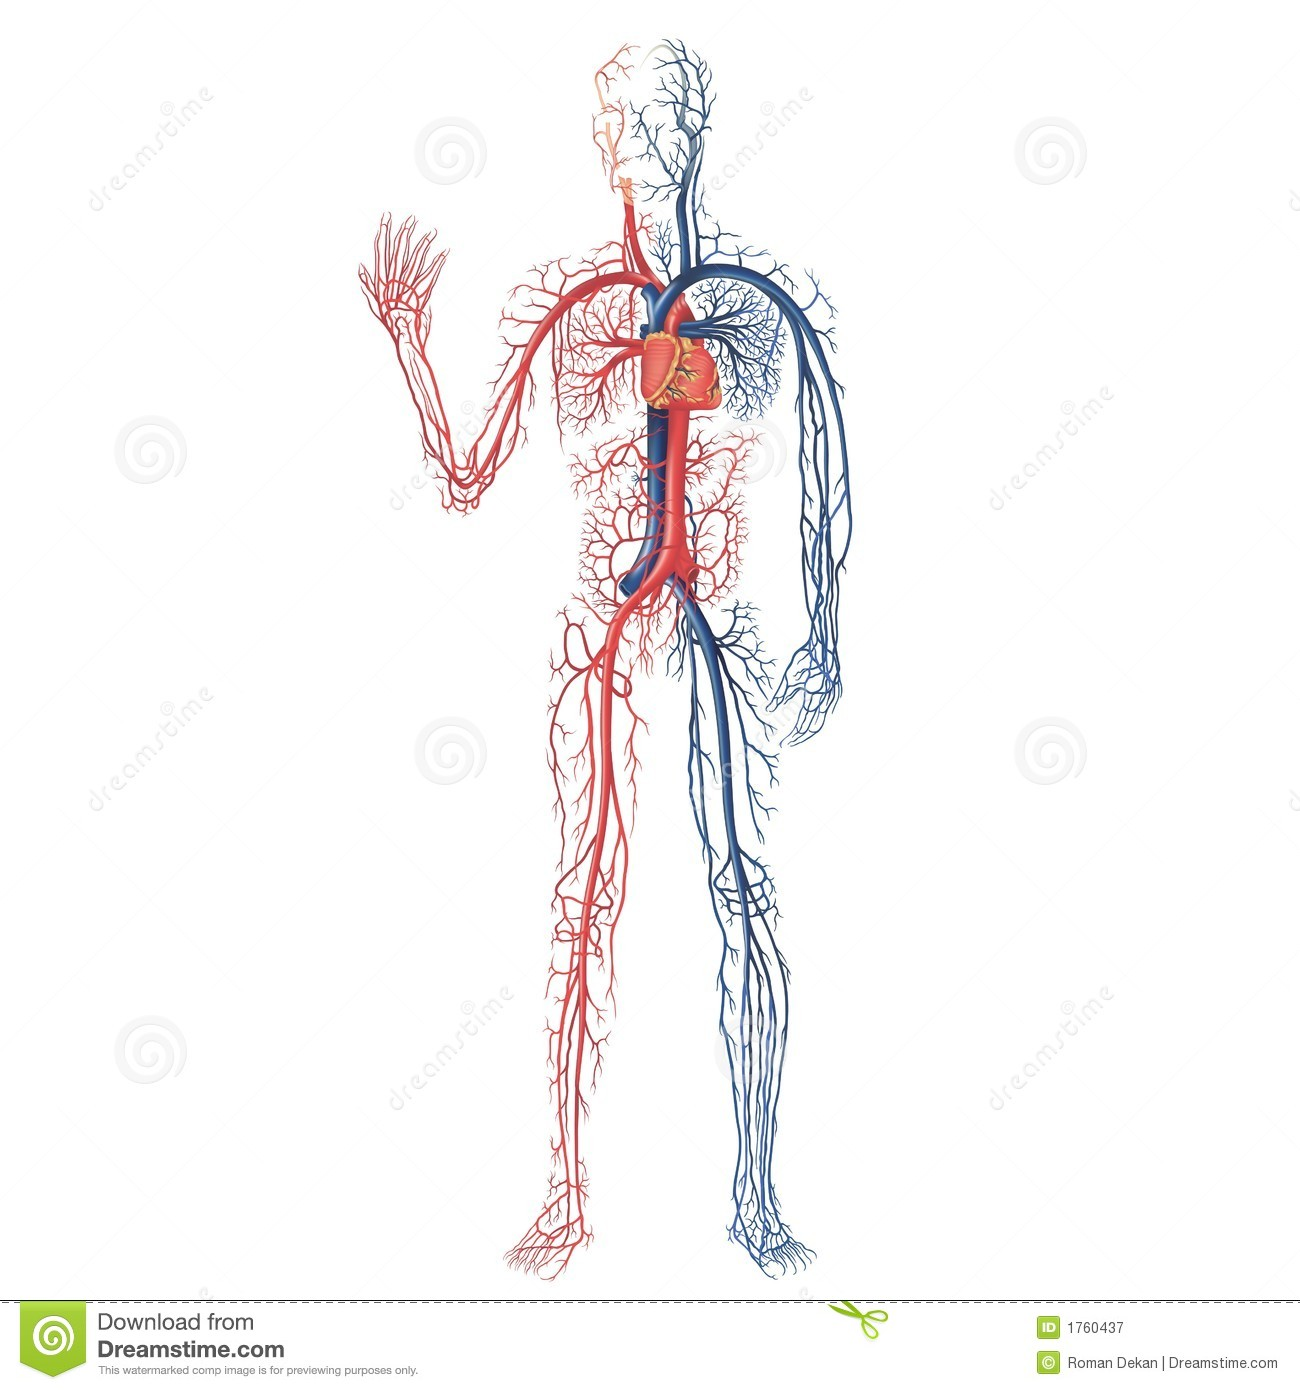 Vascular System Royalty Free Stock Photography